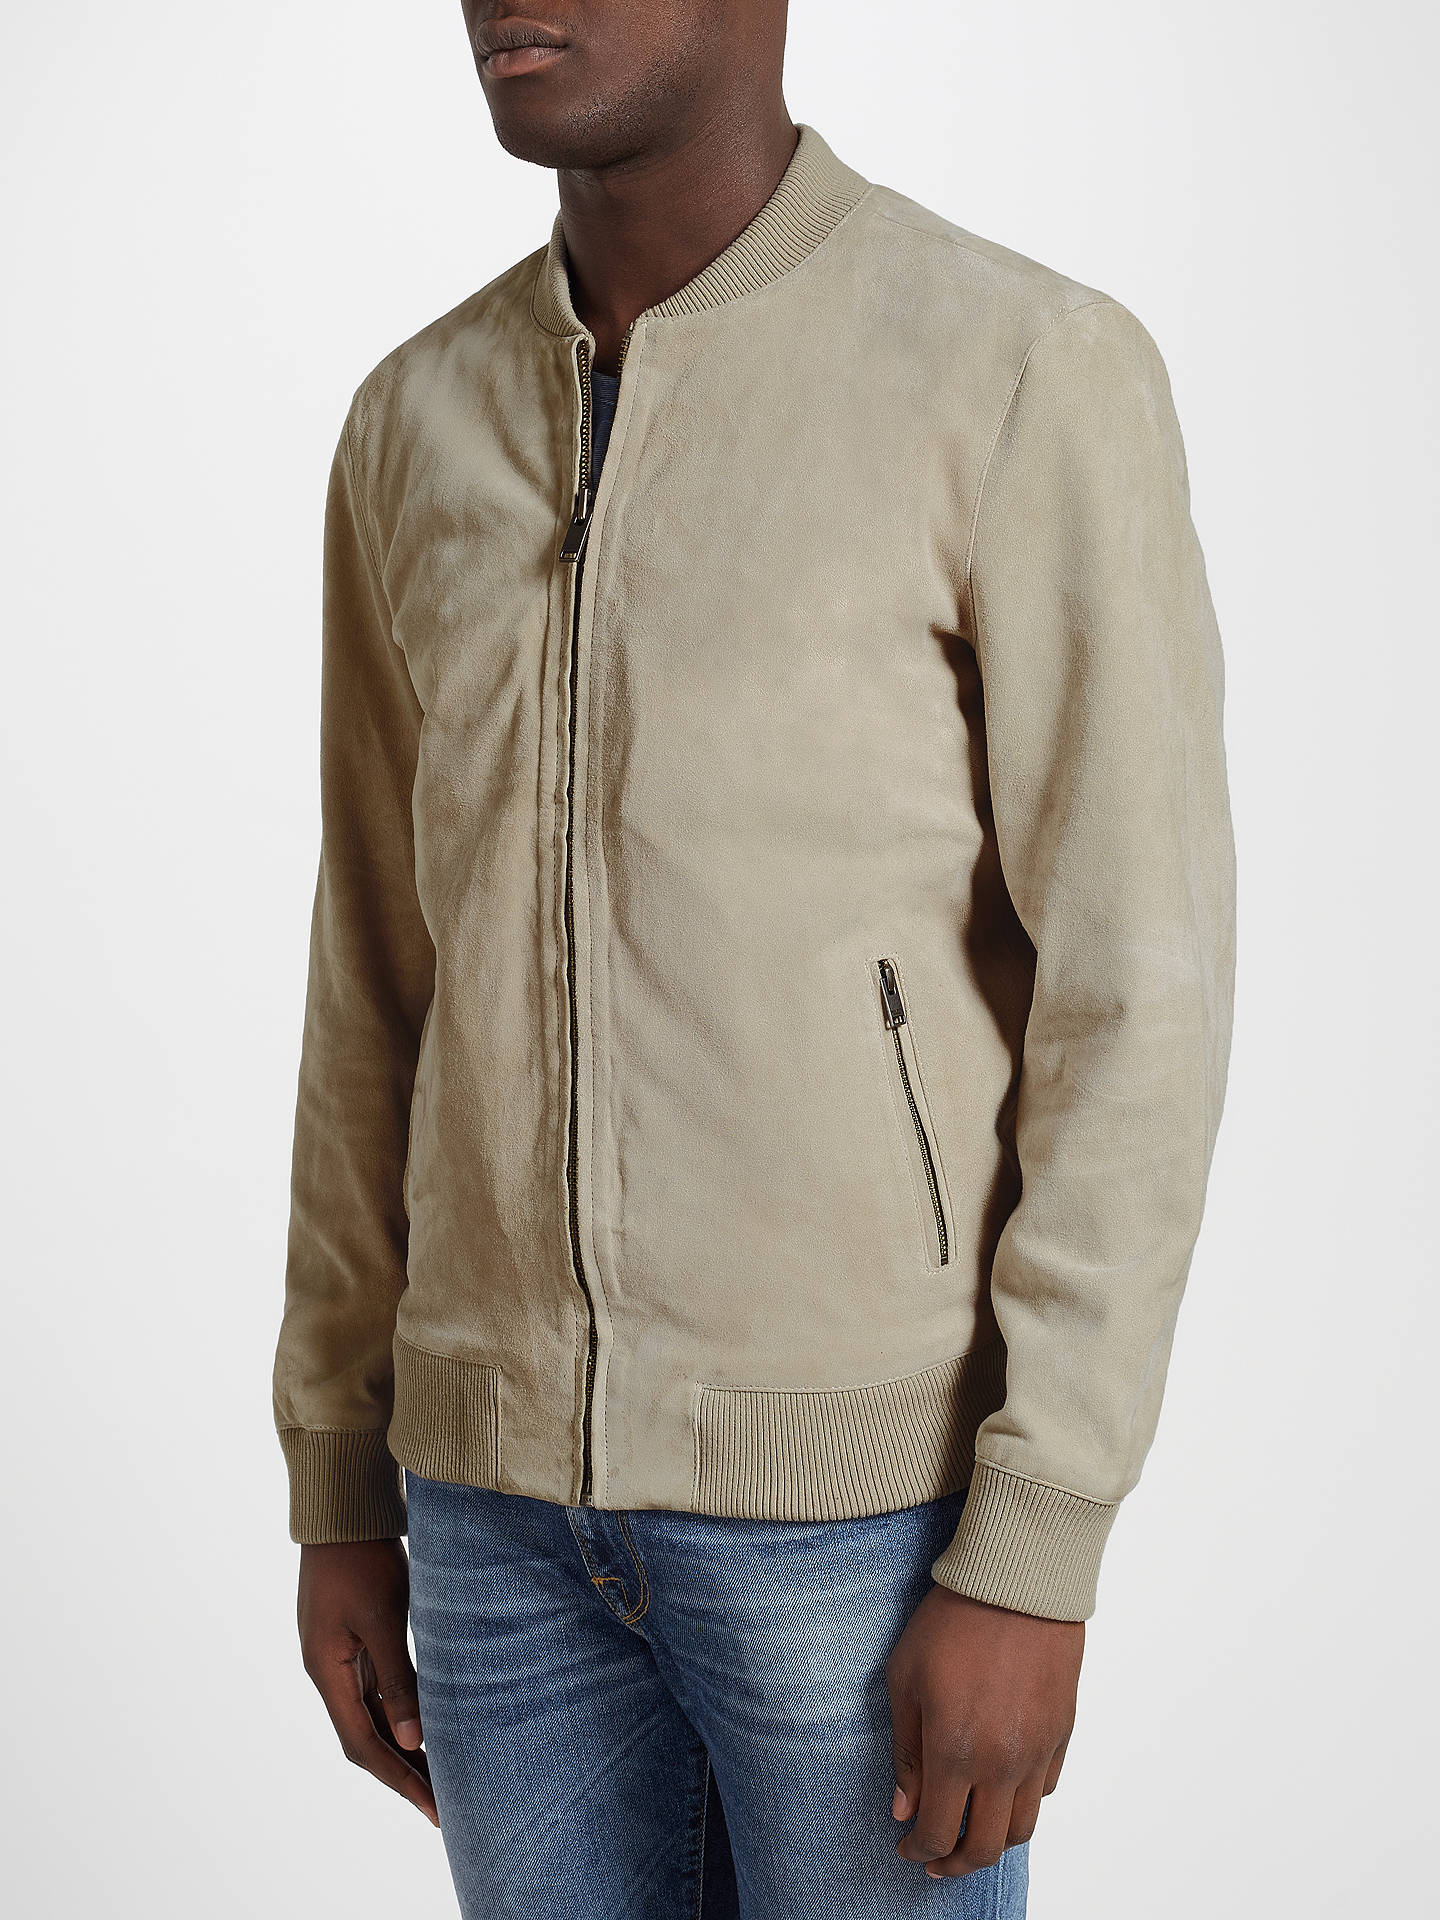 BuySelected Homme Nean Suede Bomber Jacket, Abbey Stone, XL Online at johnlewis.com